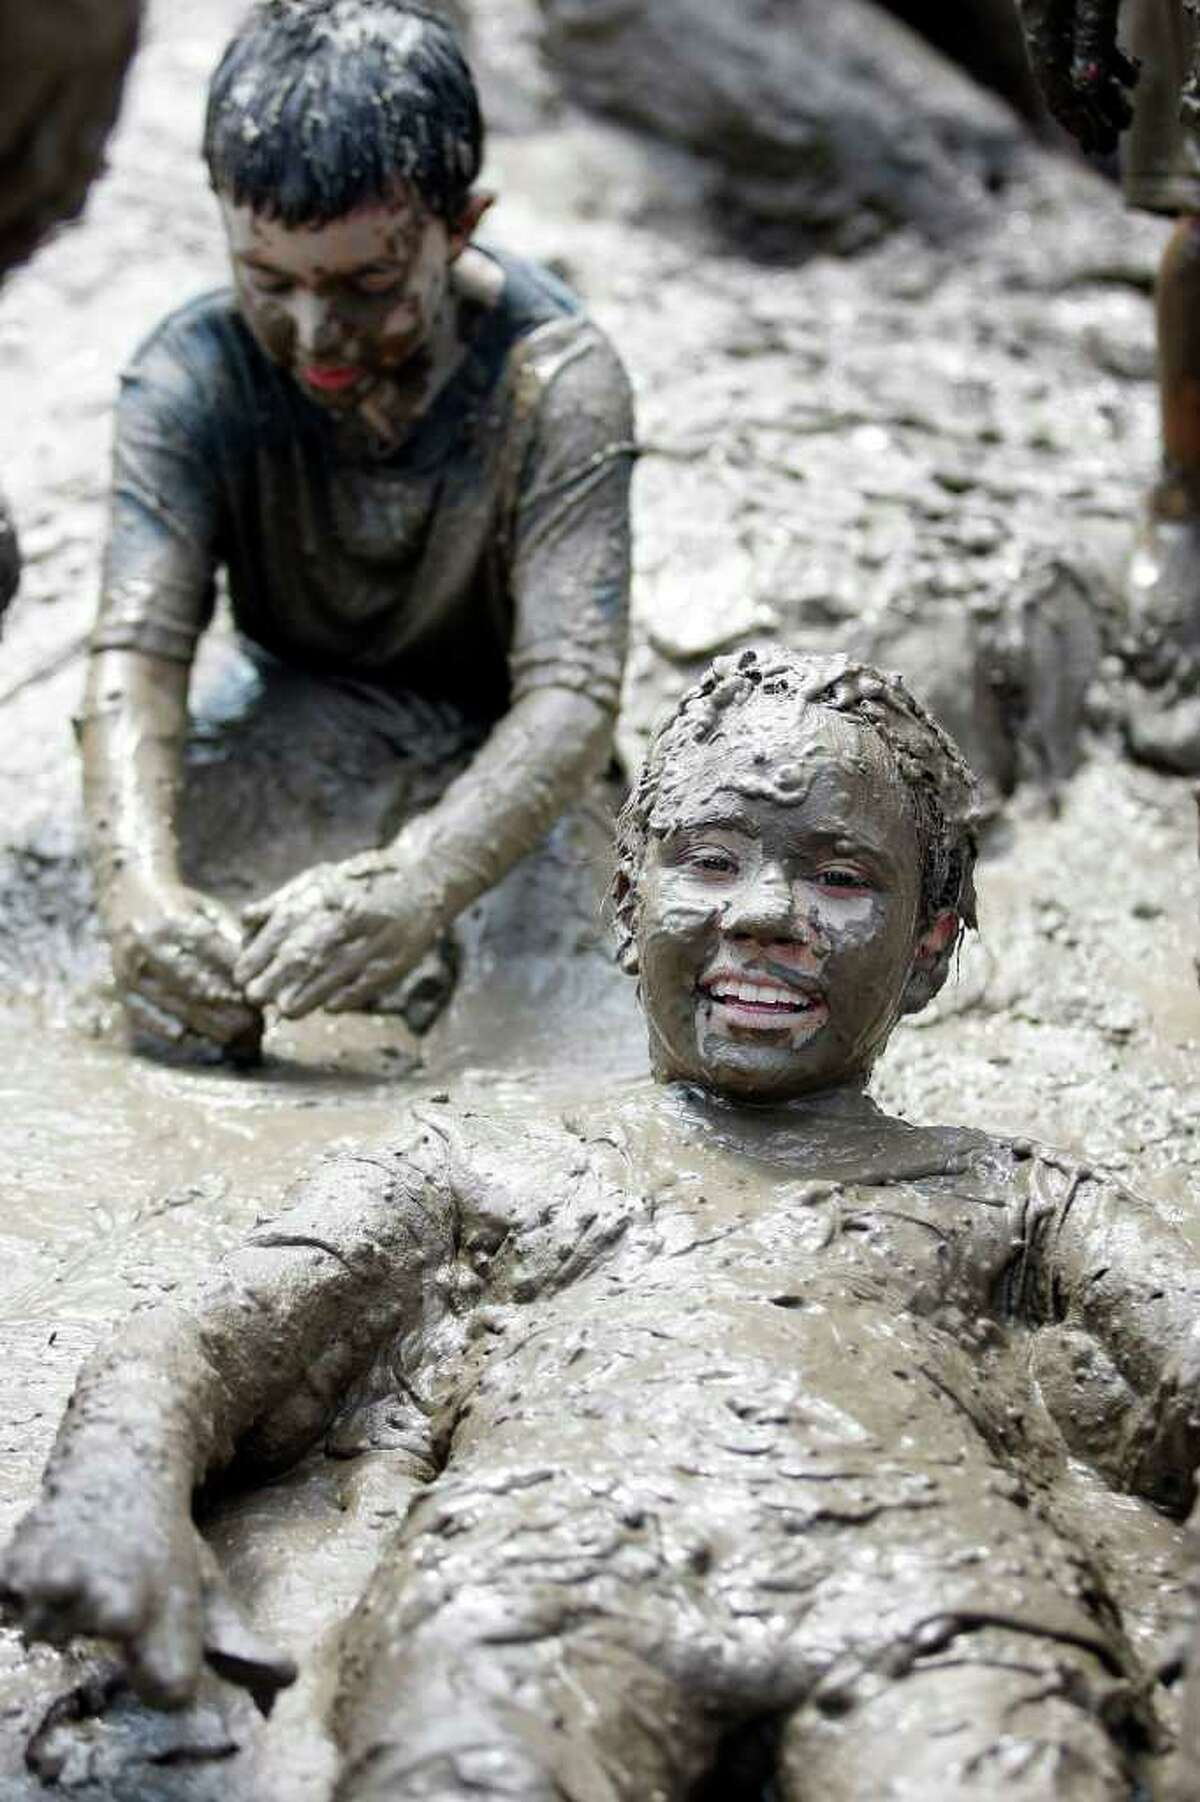 WESTLAND, MI - JULY 12: Children play in a giant lake of mud during Wayne County's 2011 Mud Day event at Nankin Mills Park July 12, 2011 in Westland, Michigan. The annual event consists of 20,000 gallons of water mixed with 200 tons of topsoil. (Photo by Bill Pugliano/Getty Images)